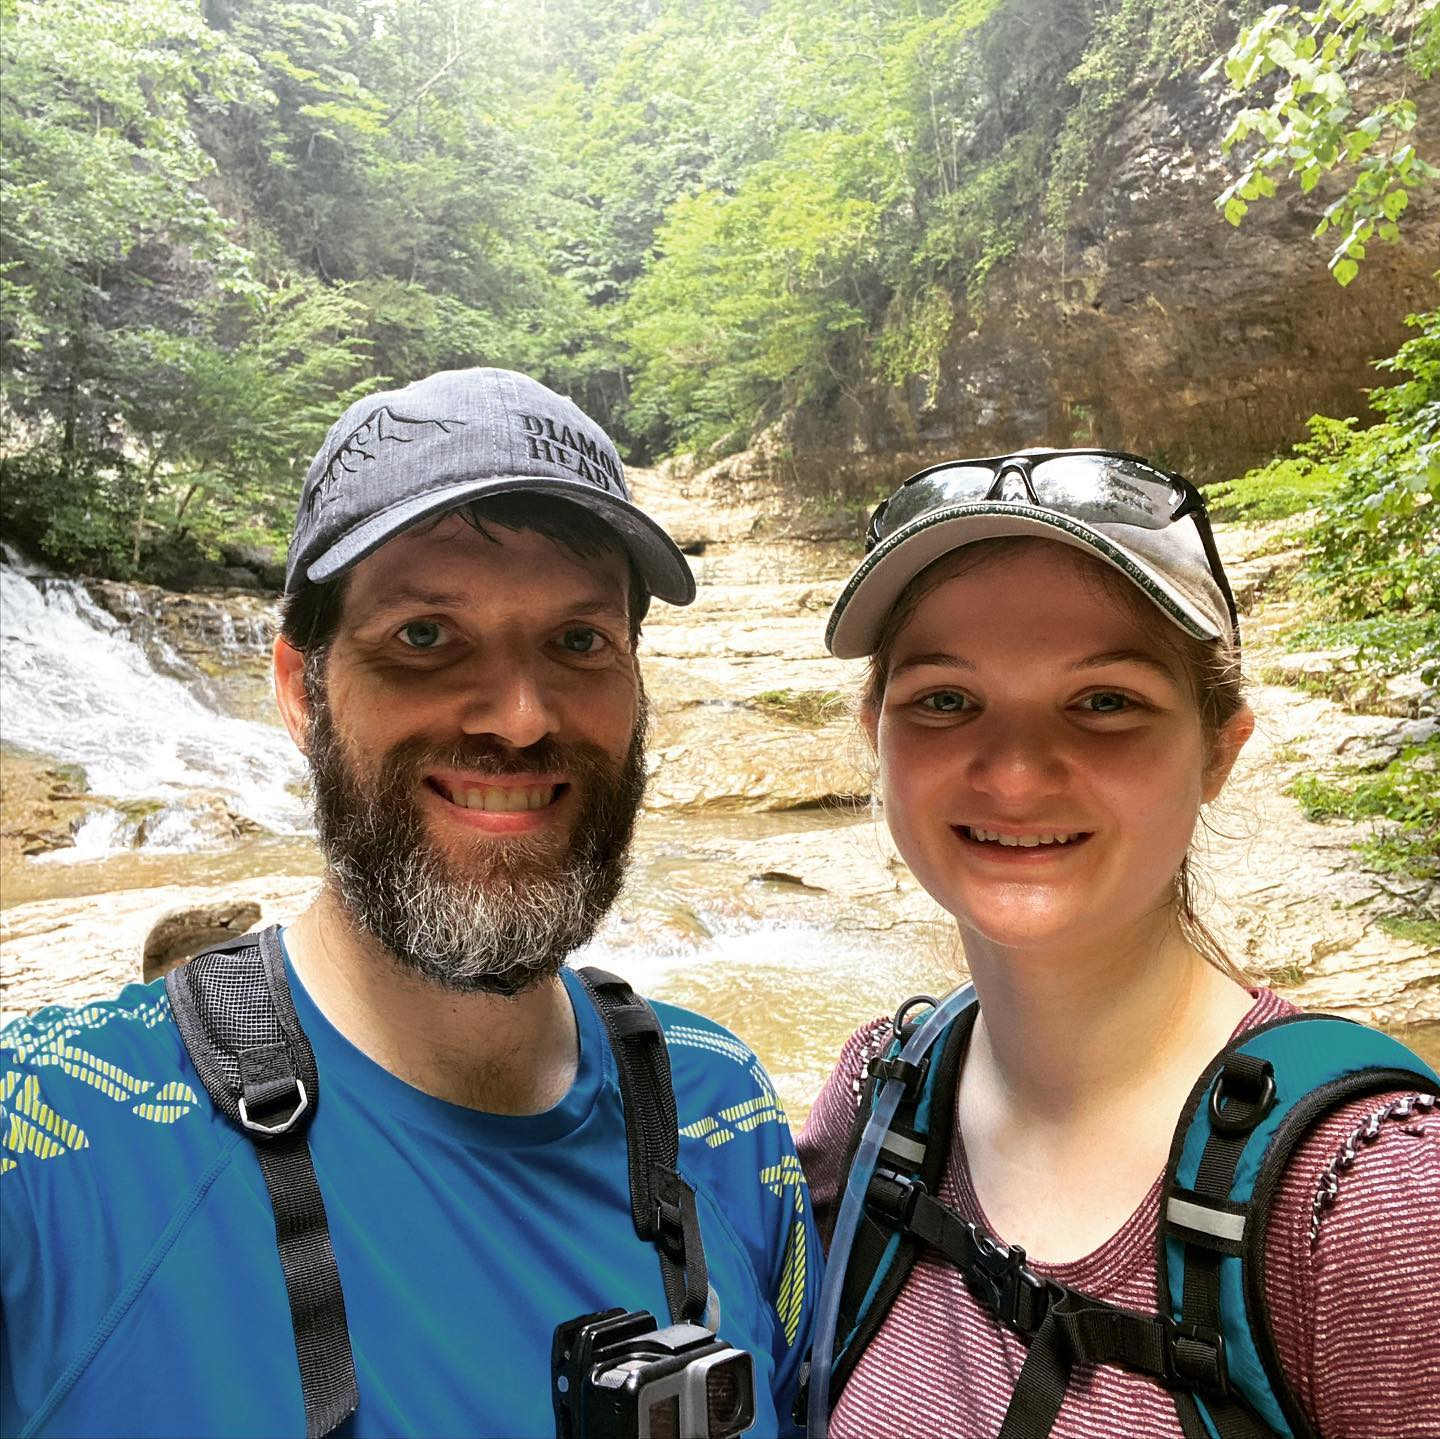 "Yesterday @kateagee and I went down to the TN / AL border and spent the day hiking to Mill Creek and the Walls of Jericho. The ""walls"" and waterfalls were stunning and were a great payoff in the middle of a very tough hike. In total we did approximately 14-miles with over 2,000 ft of elevation gain. It was a great daddy-daughter day. #family #hiking"